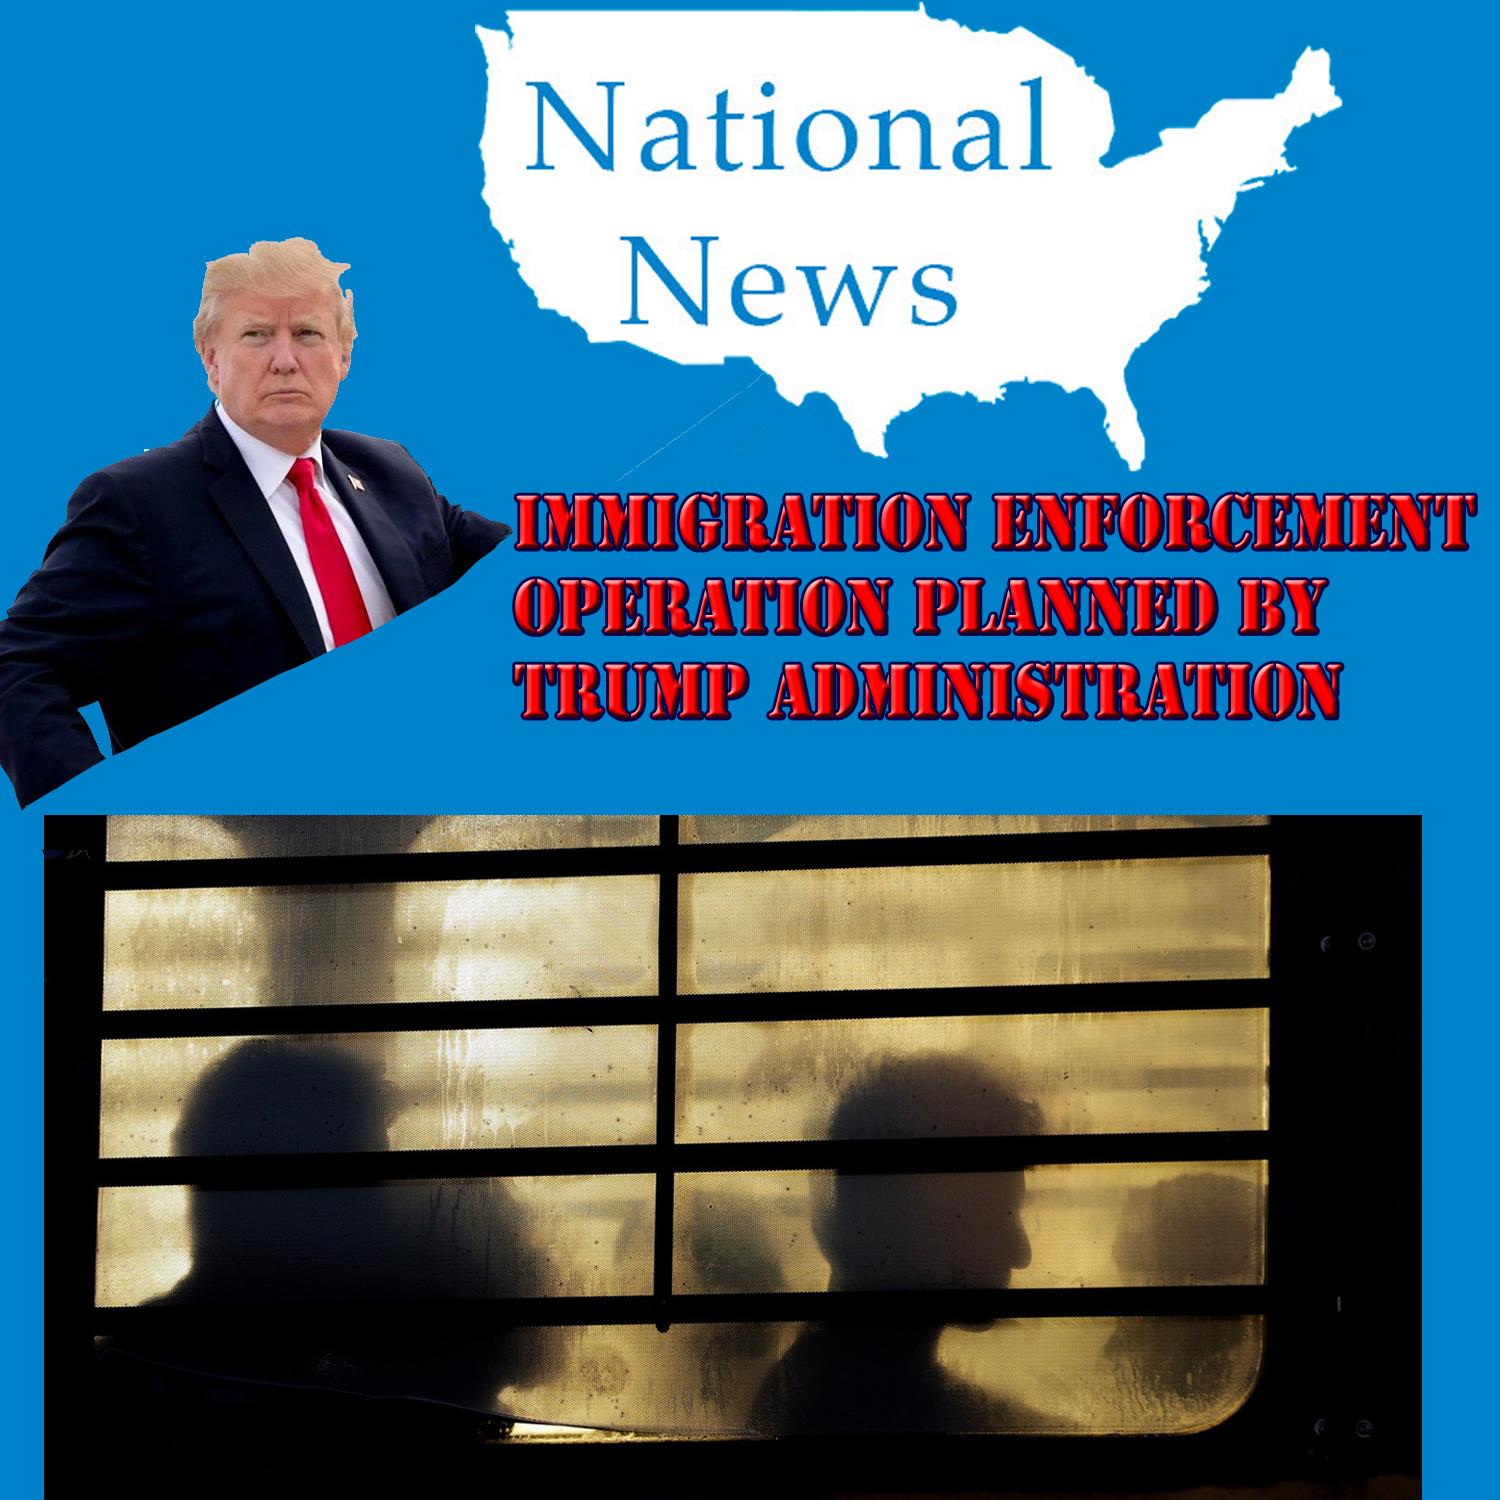 Immigration Enforcement Operation planned by Trump Administration